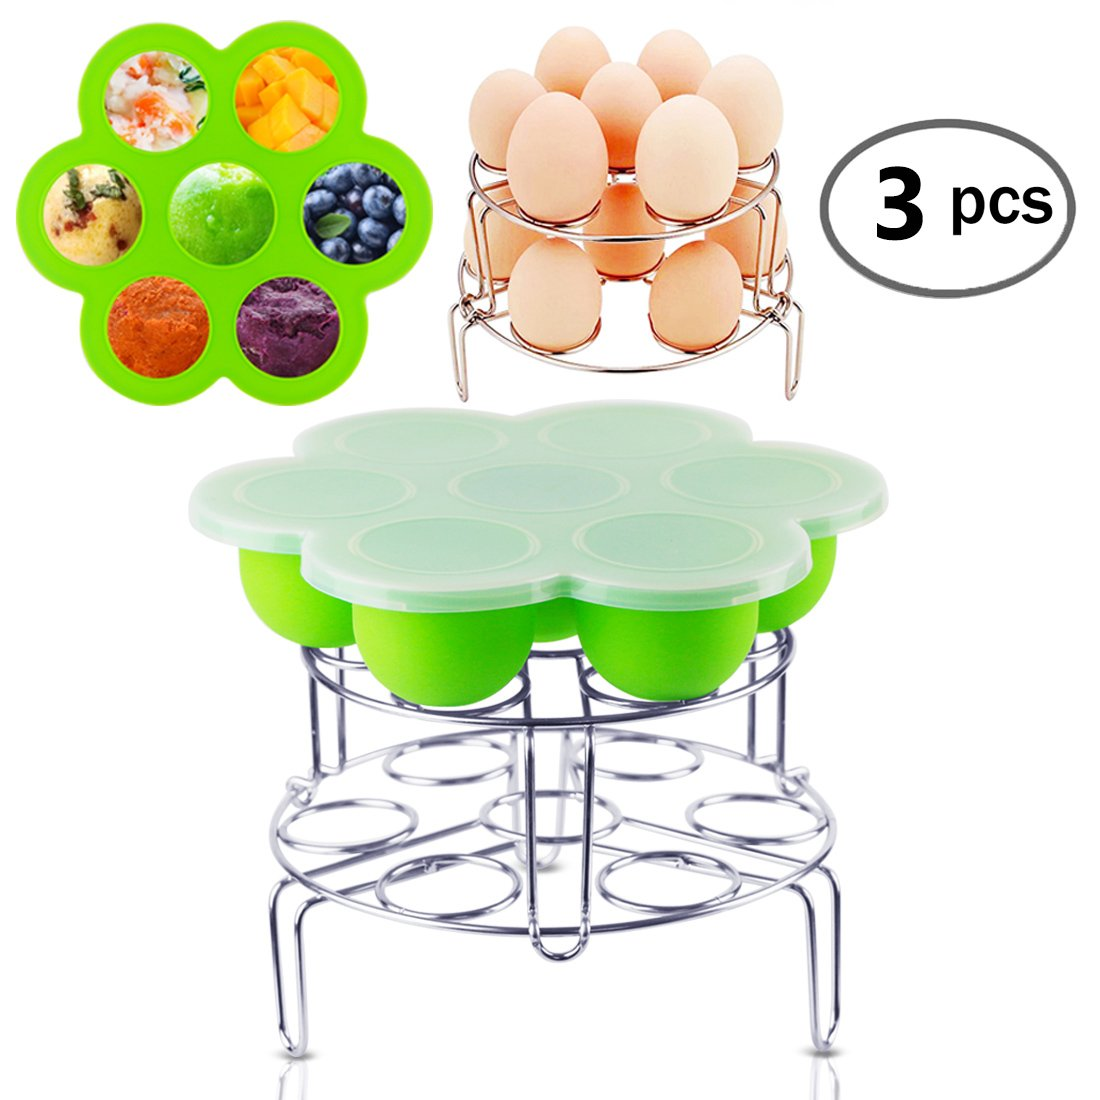 Instant Pot Accessories Silicone Egg Bites Molds with 2 Pcs Stainless Steel Egg Steamer Rack Set for Instant Pot Accessories Reusable Storage Container By Fanuk Sl-EBM